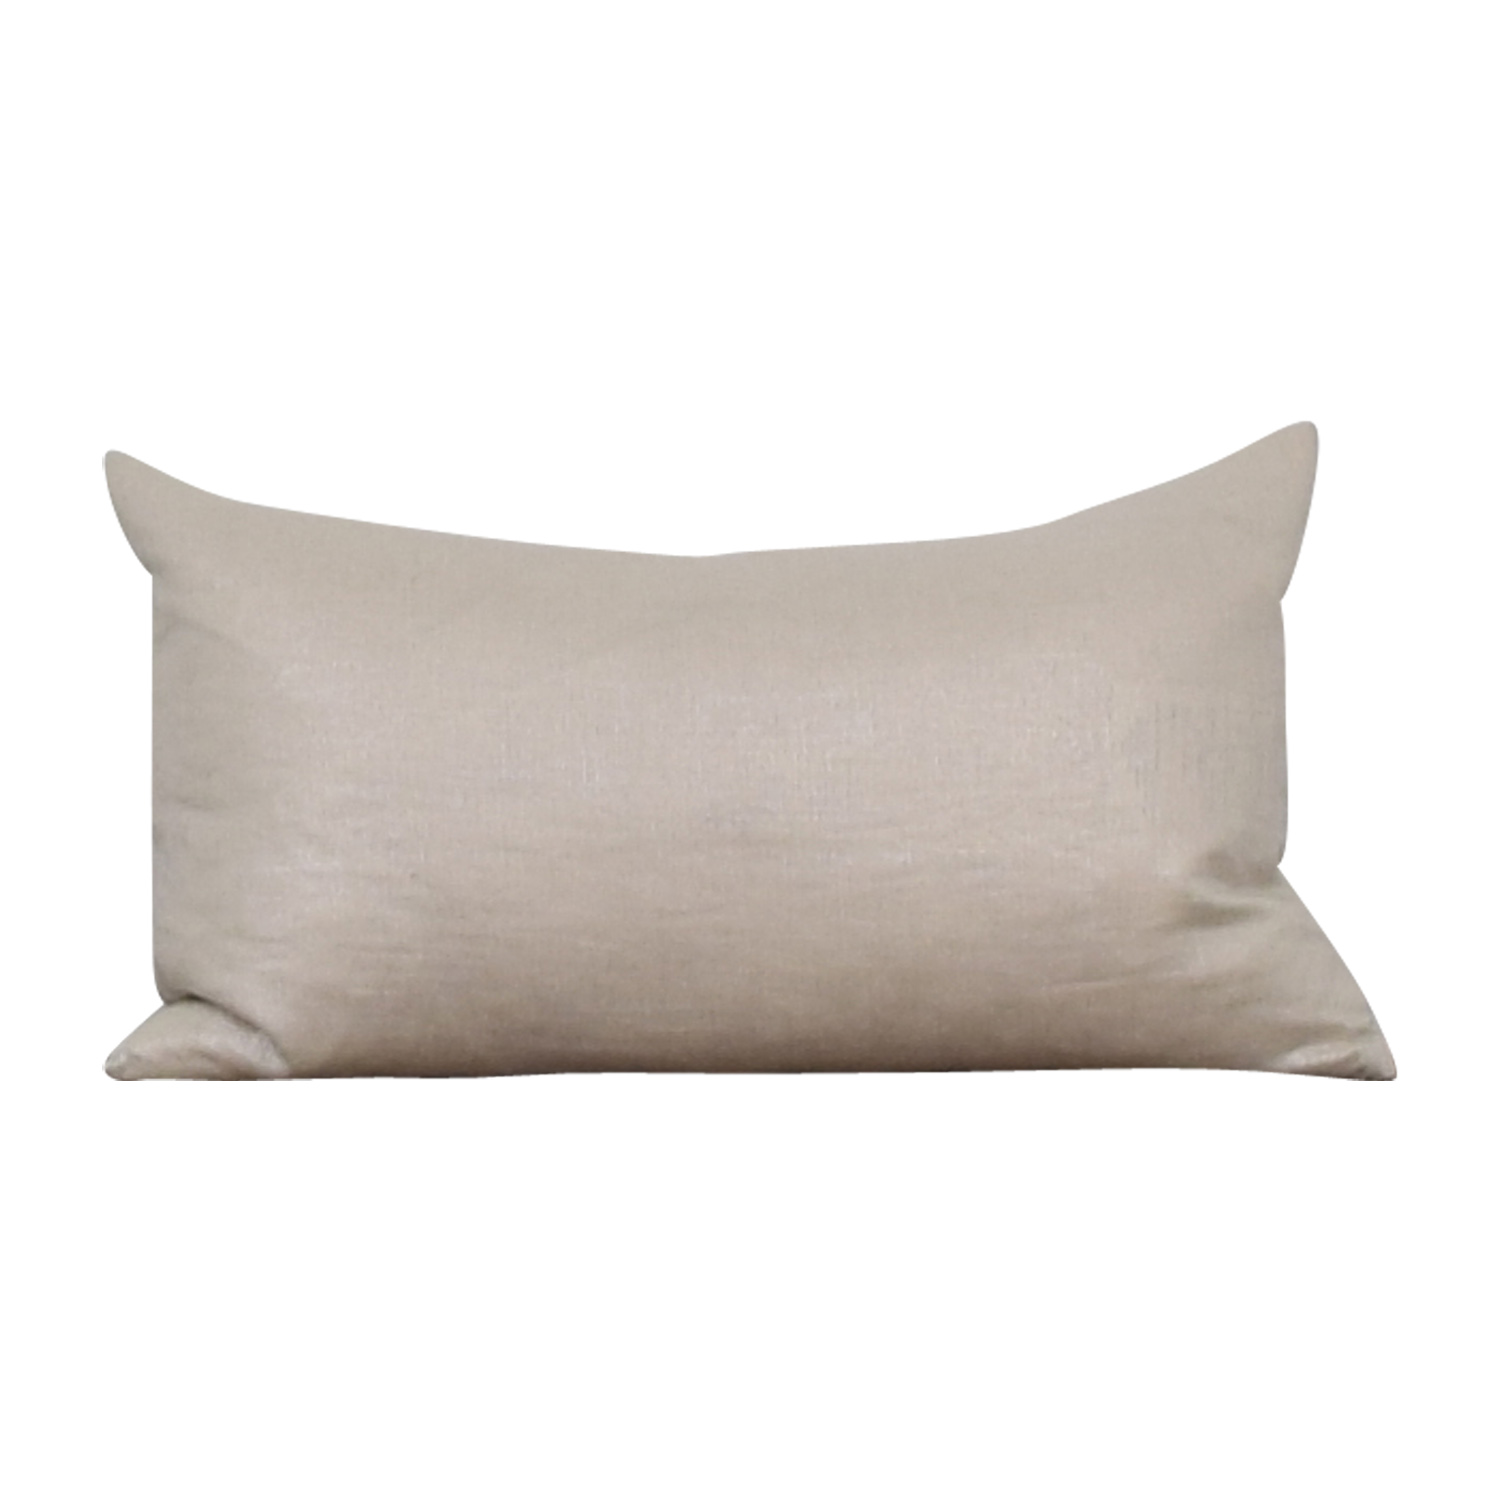 Room & Board Room & Board Throw Pillow nj